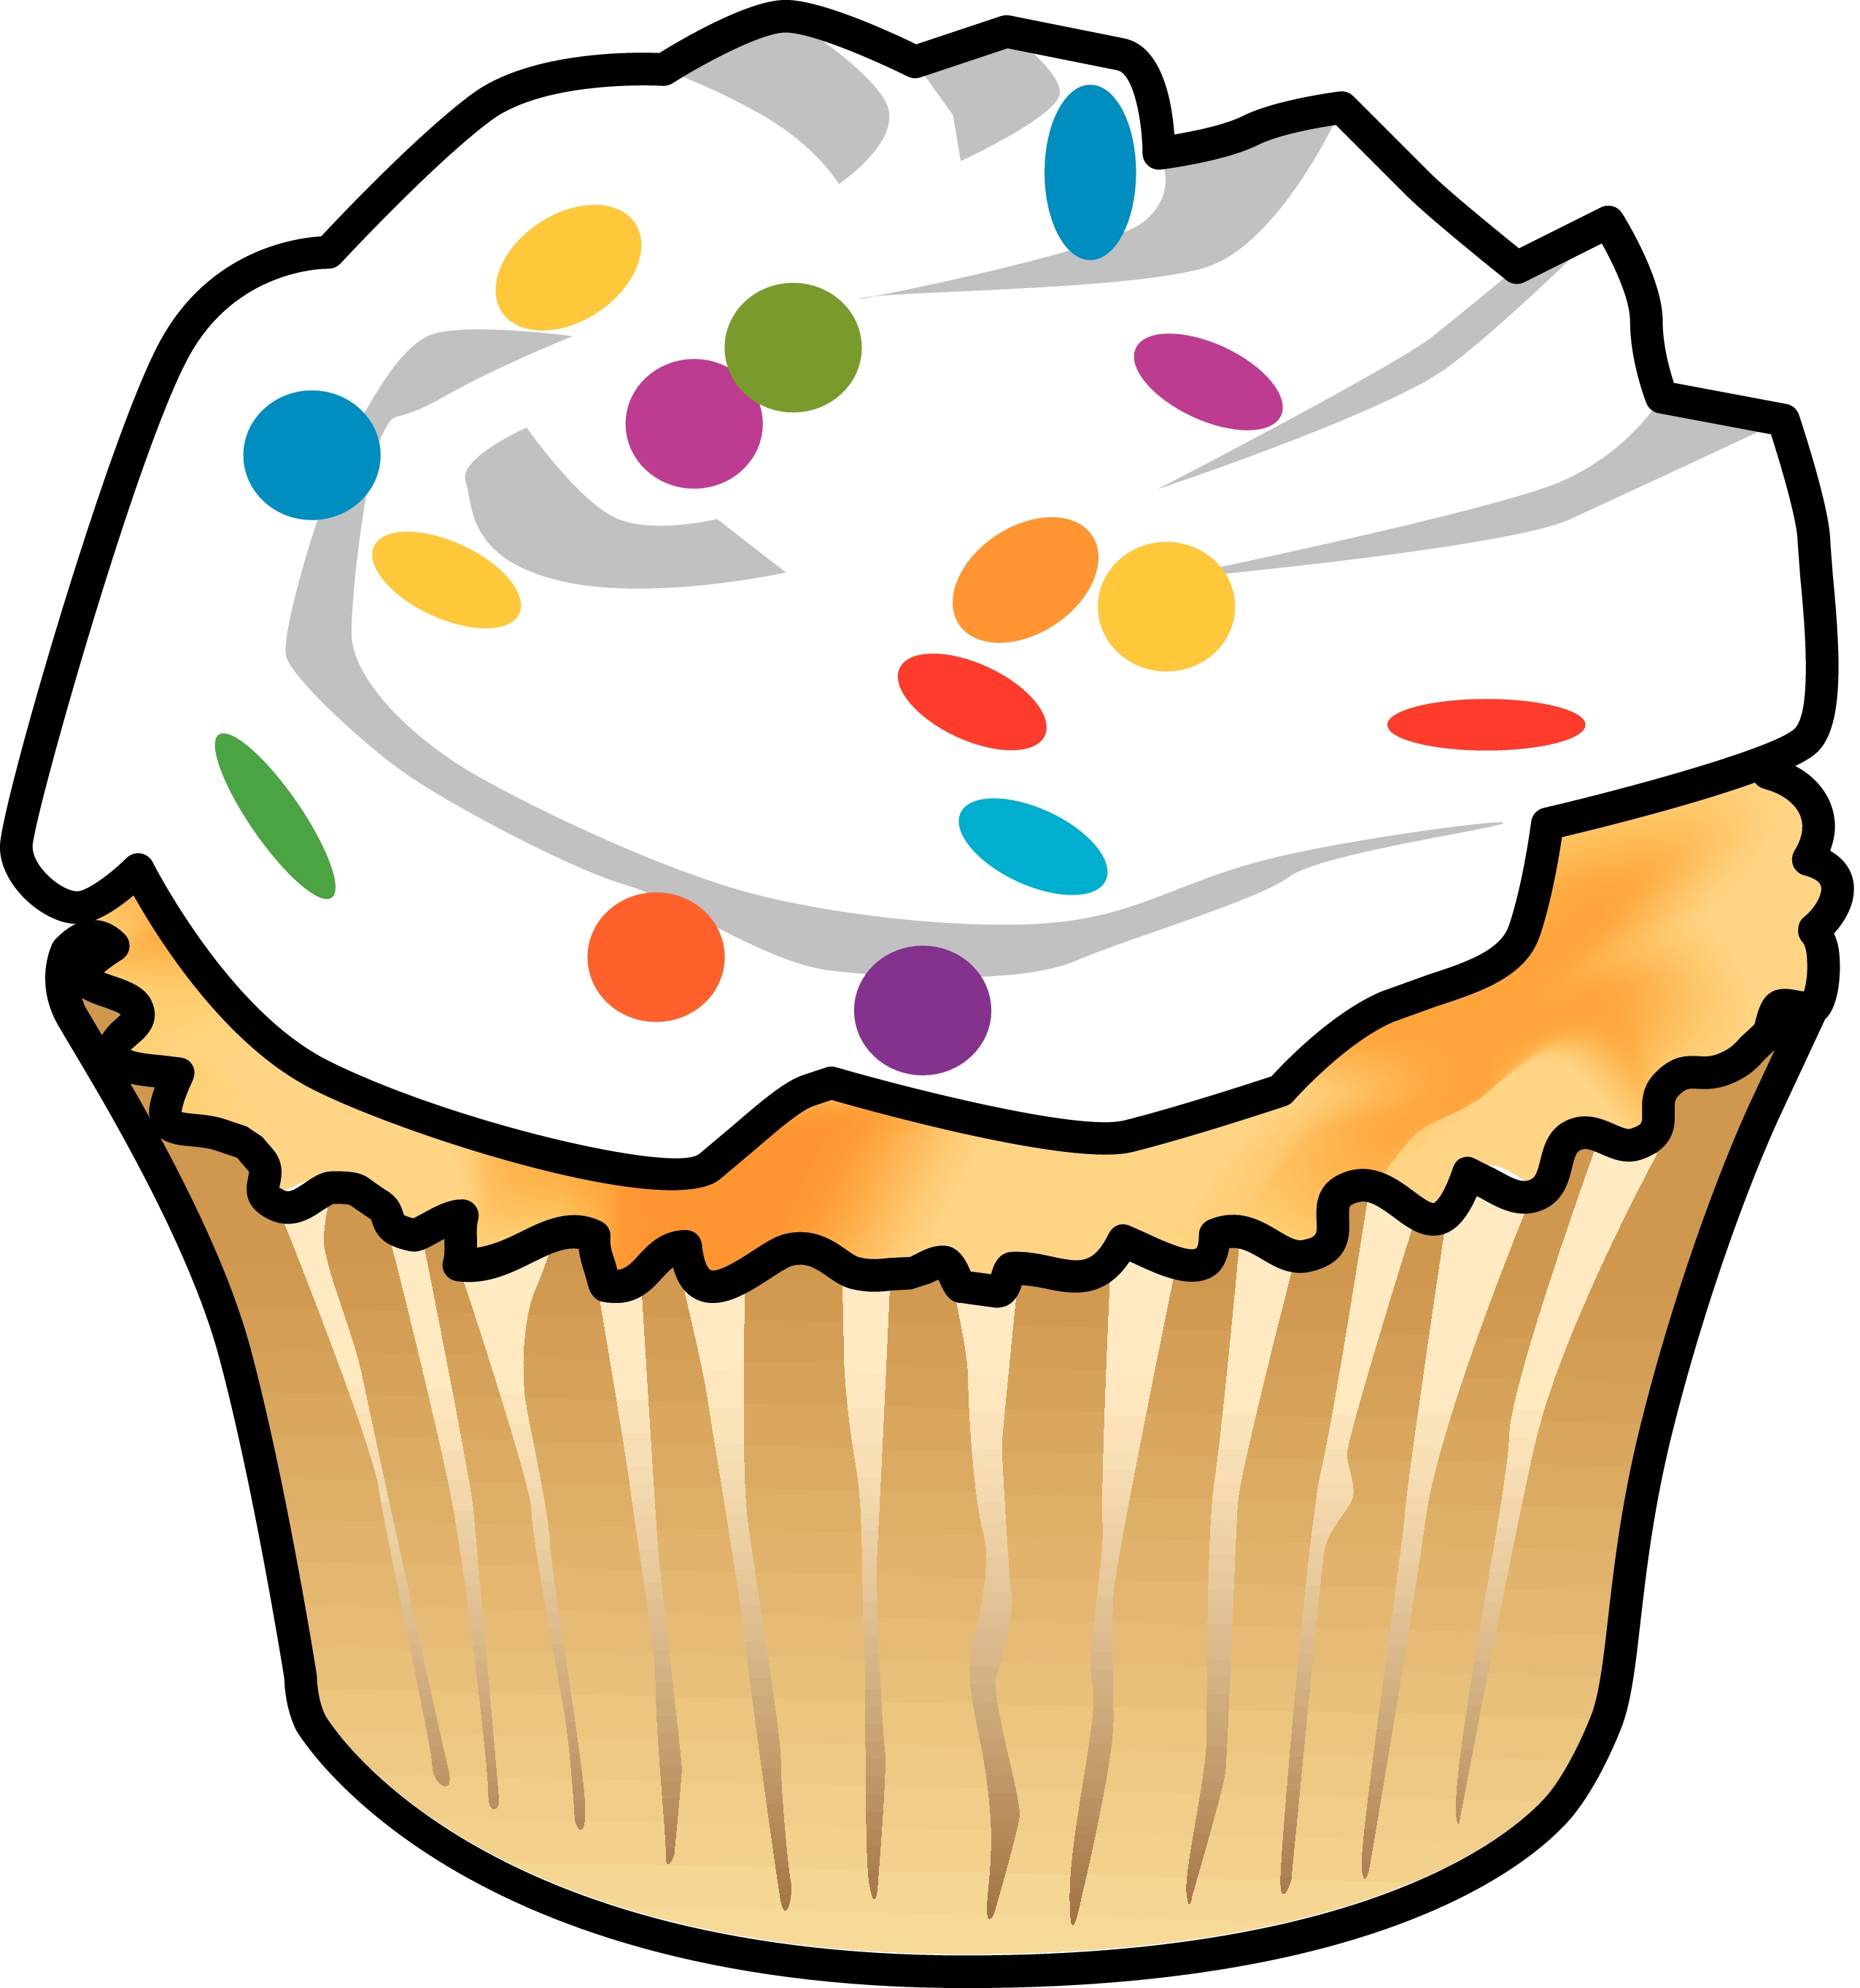 1000+ images about Bake Sale Goods on Pinterest.